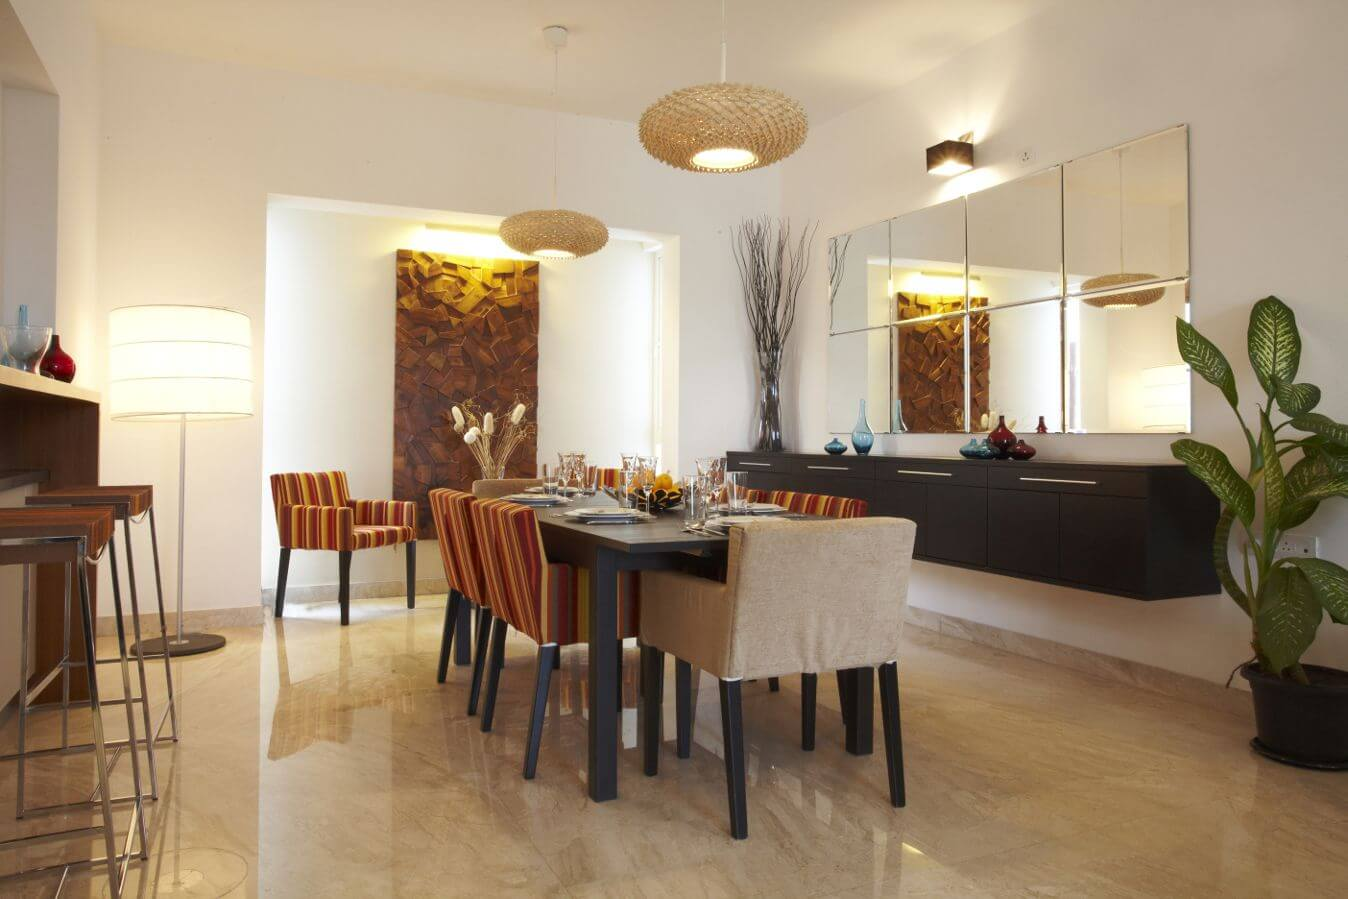 SPACIOUS READY PASSION 3.5 BHK DISTRESS SALE